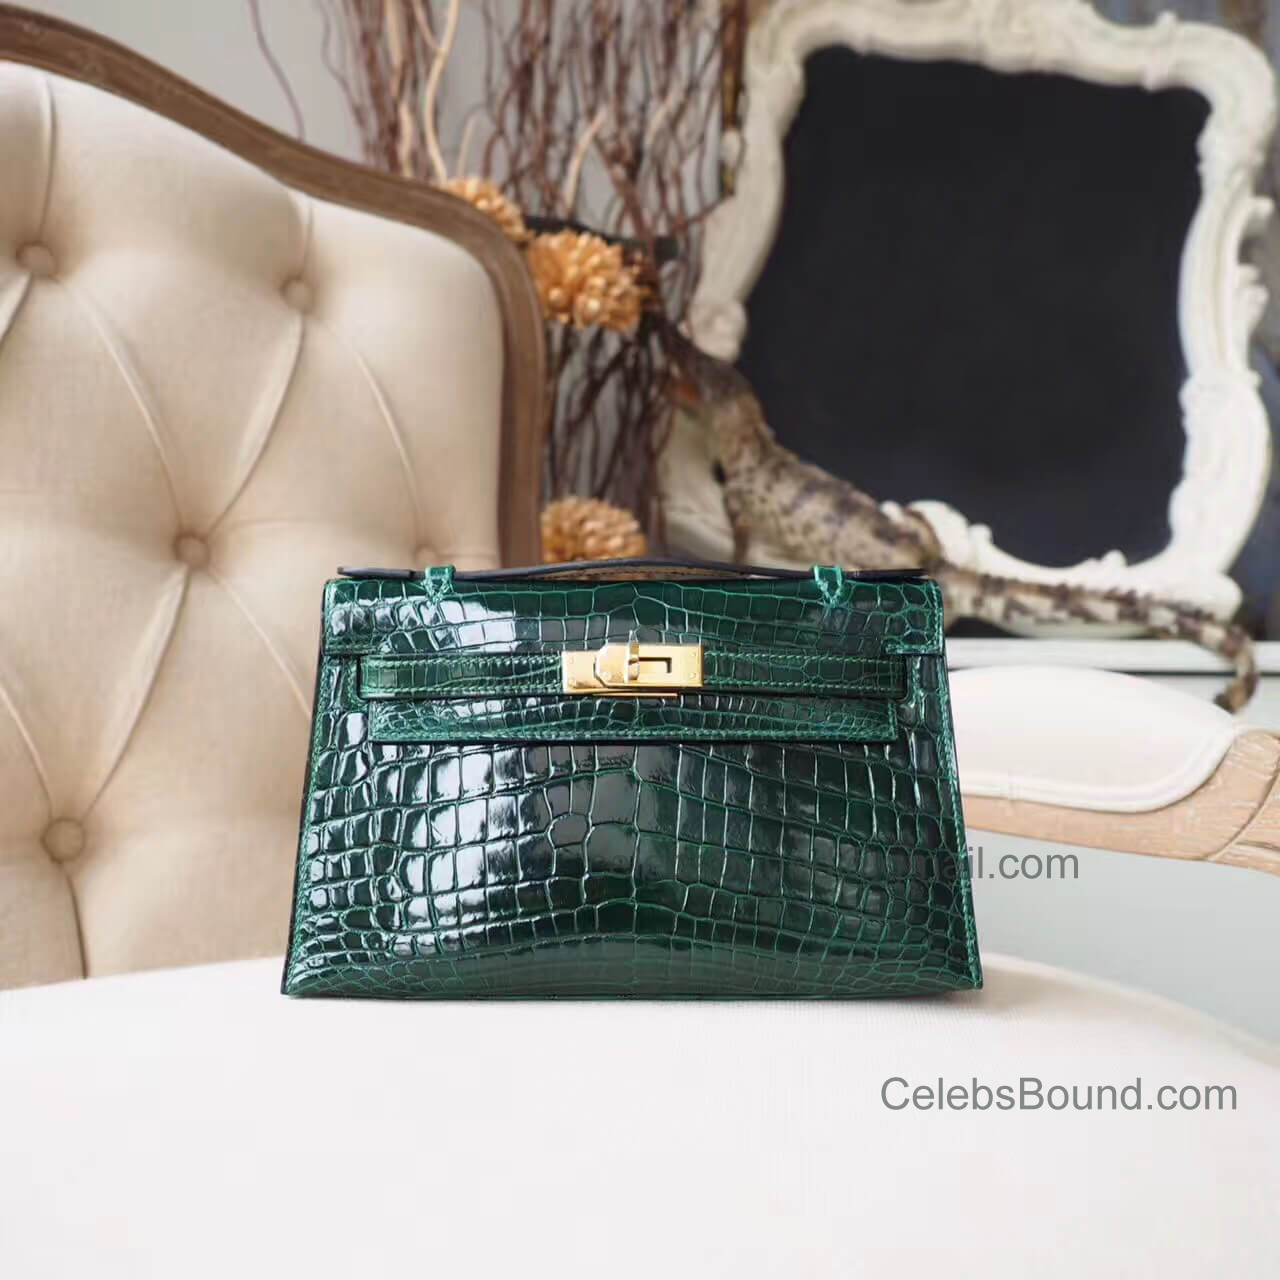 Hermes Mini Kelly 22 Pochette Bag in ck67 Vert Fonce Shiny Nile Croc GHW